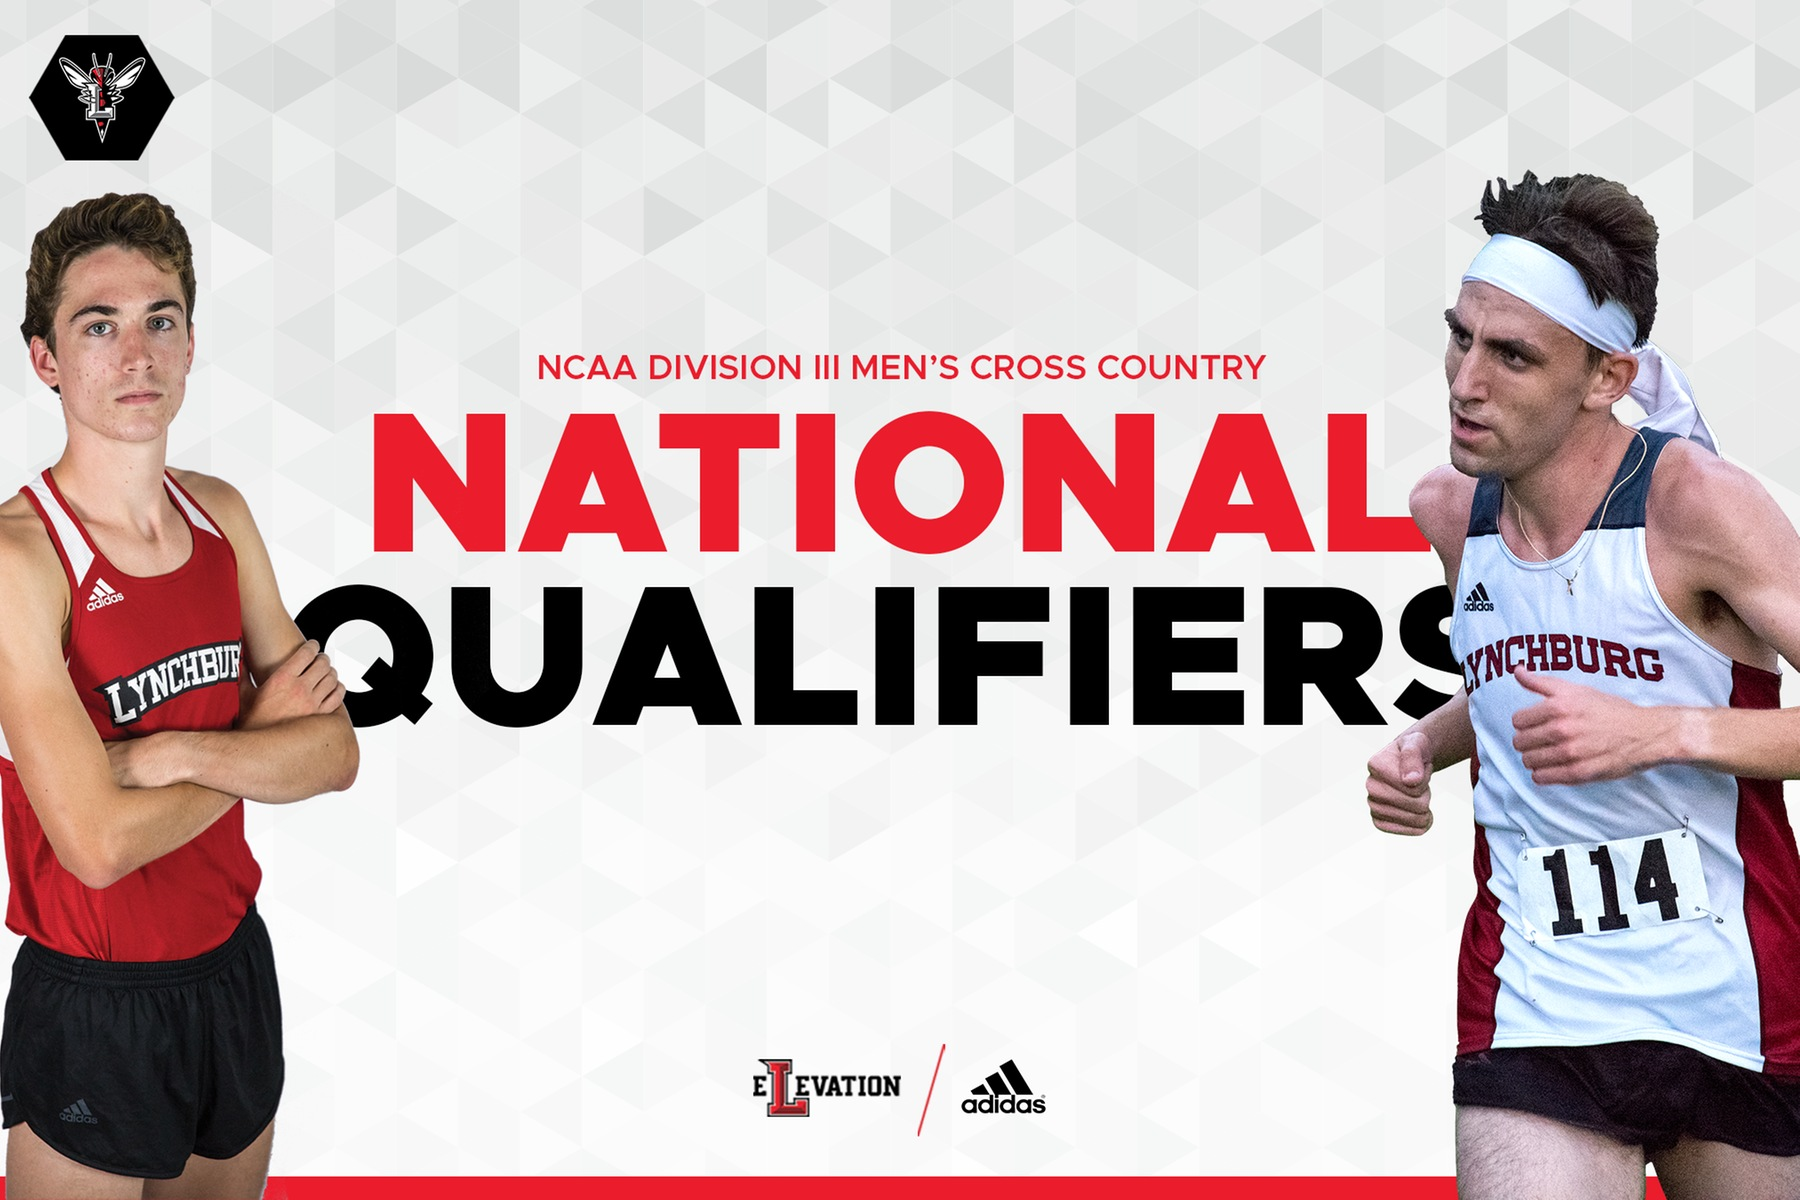 IMages of lynchburg zc national qualifiers on graphic with white background